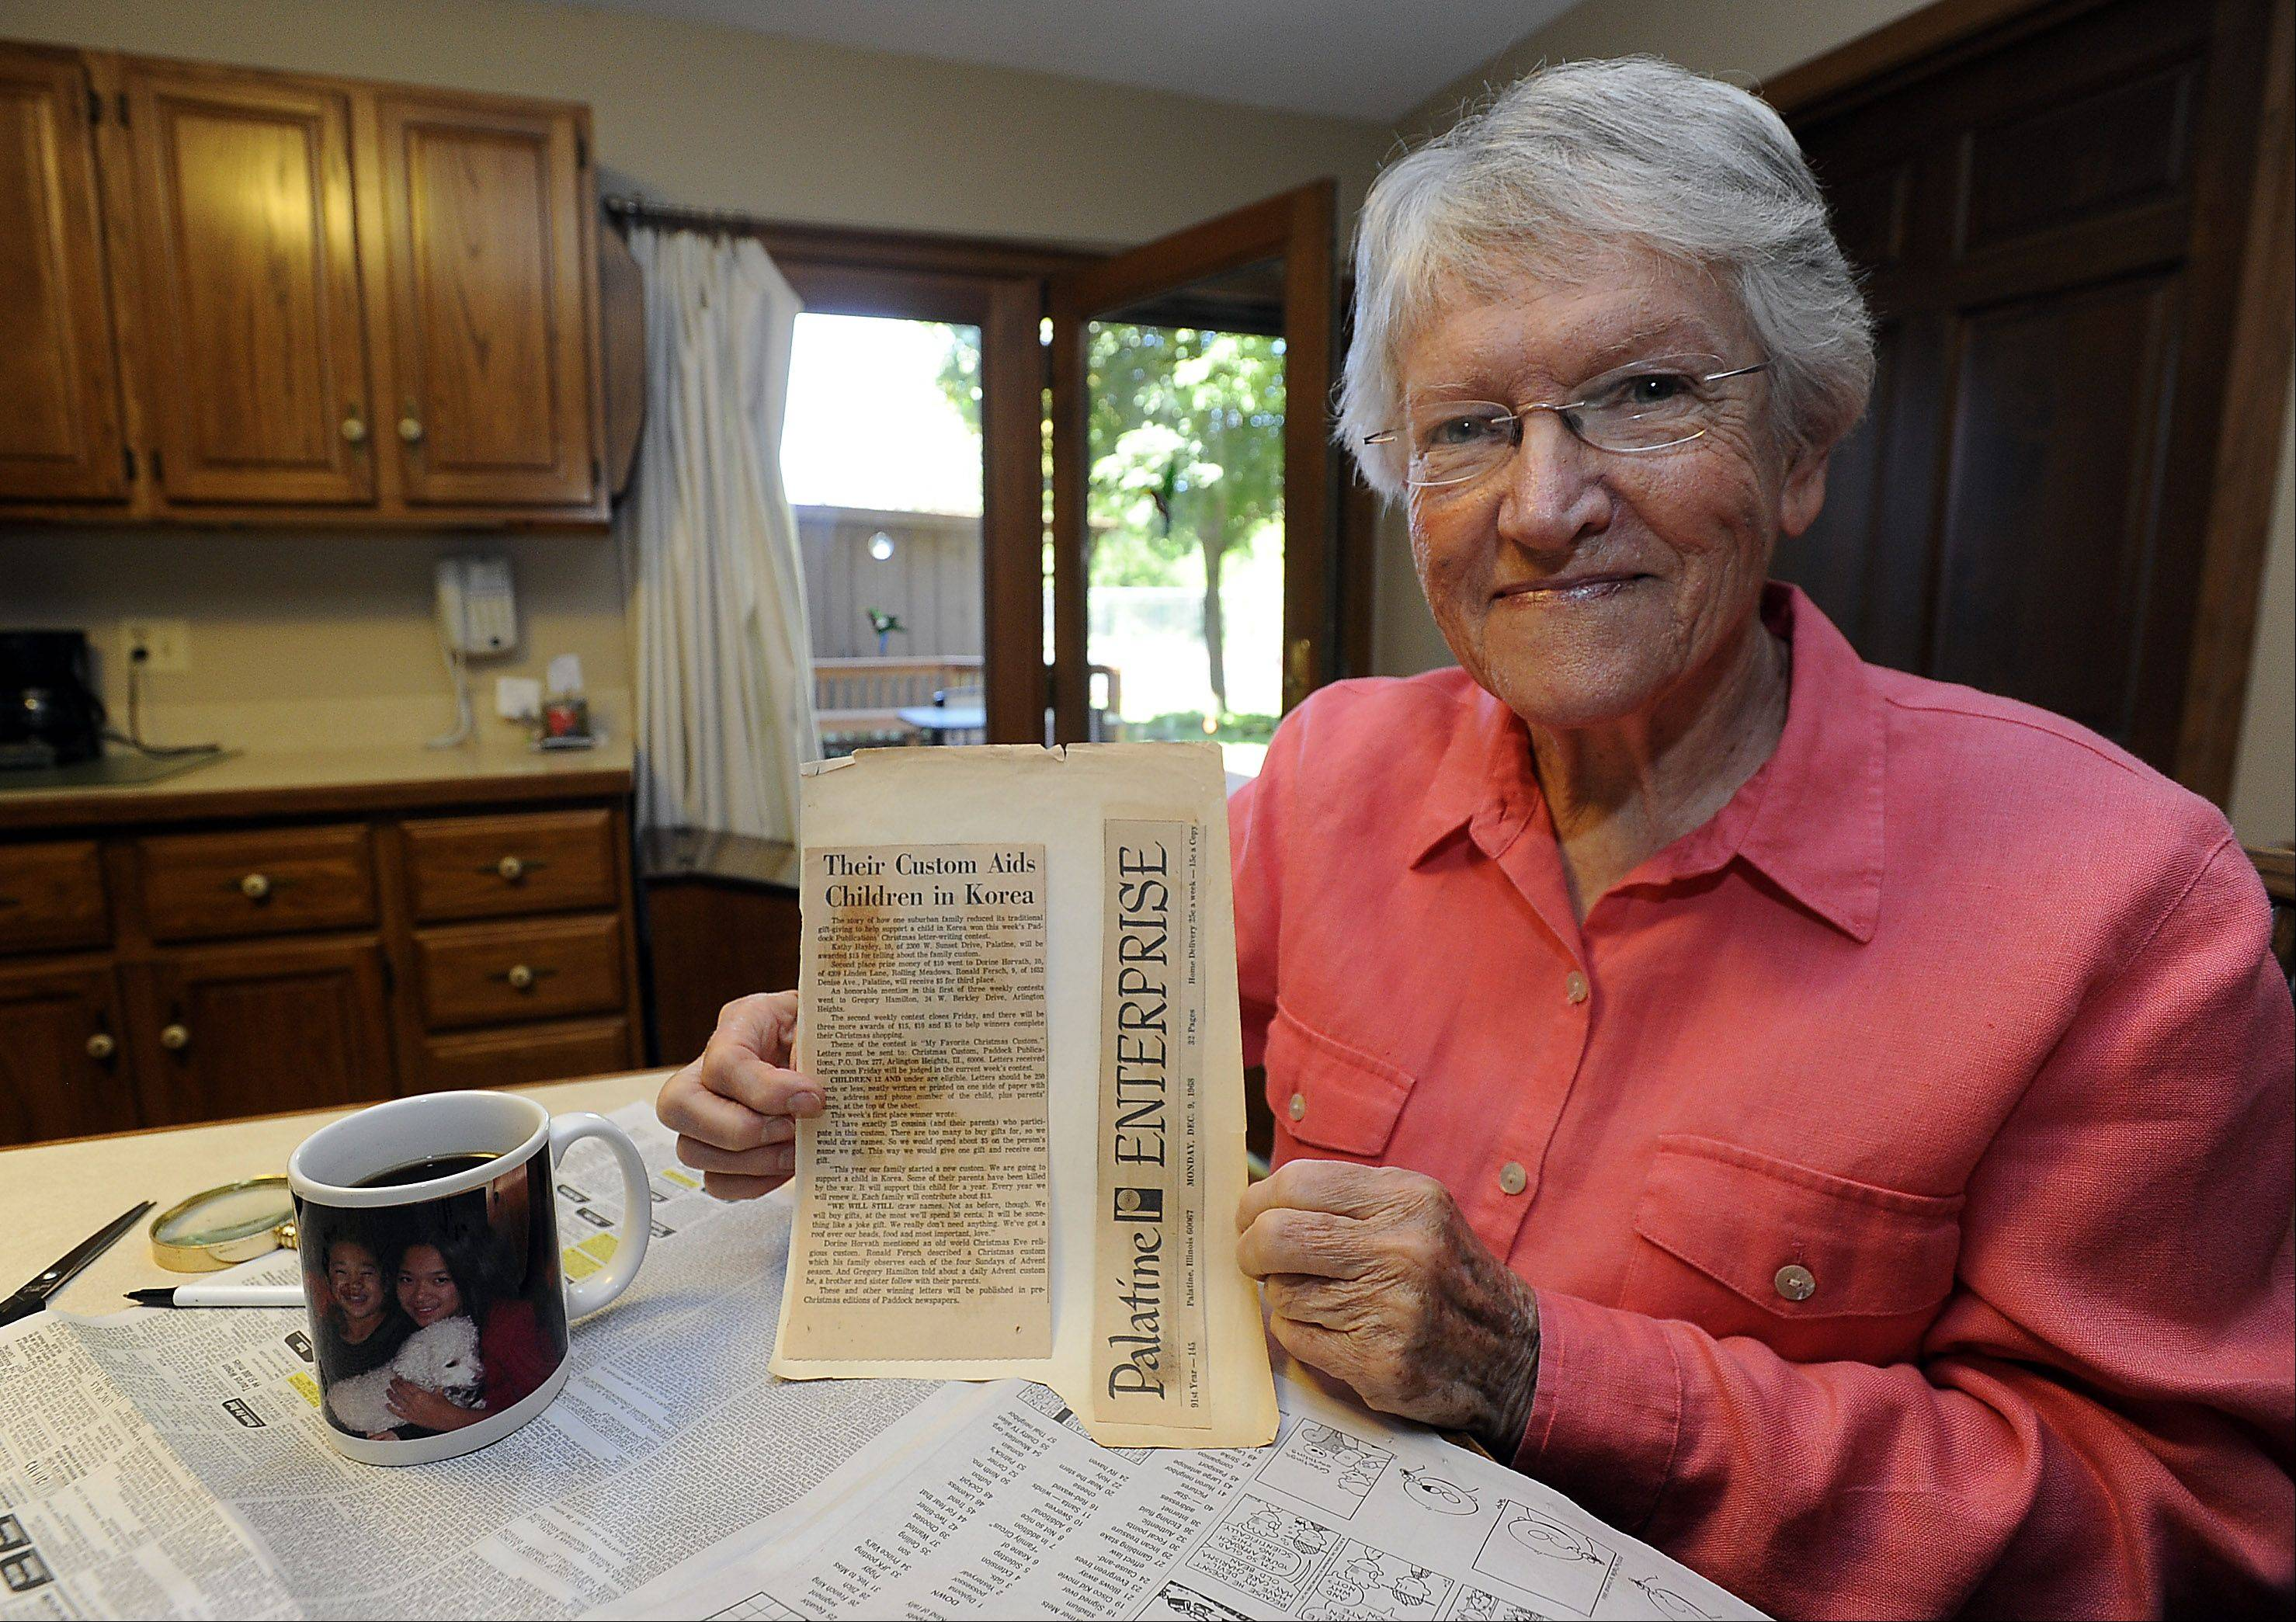 Annette Hayley of Palatine sits down in the morning with her cup of coffee and reads the Neighbor section of the Daily Herald, her favorite section. She has been a loyal reader since 1965, here showing off a section from a past issue.